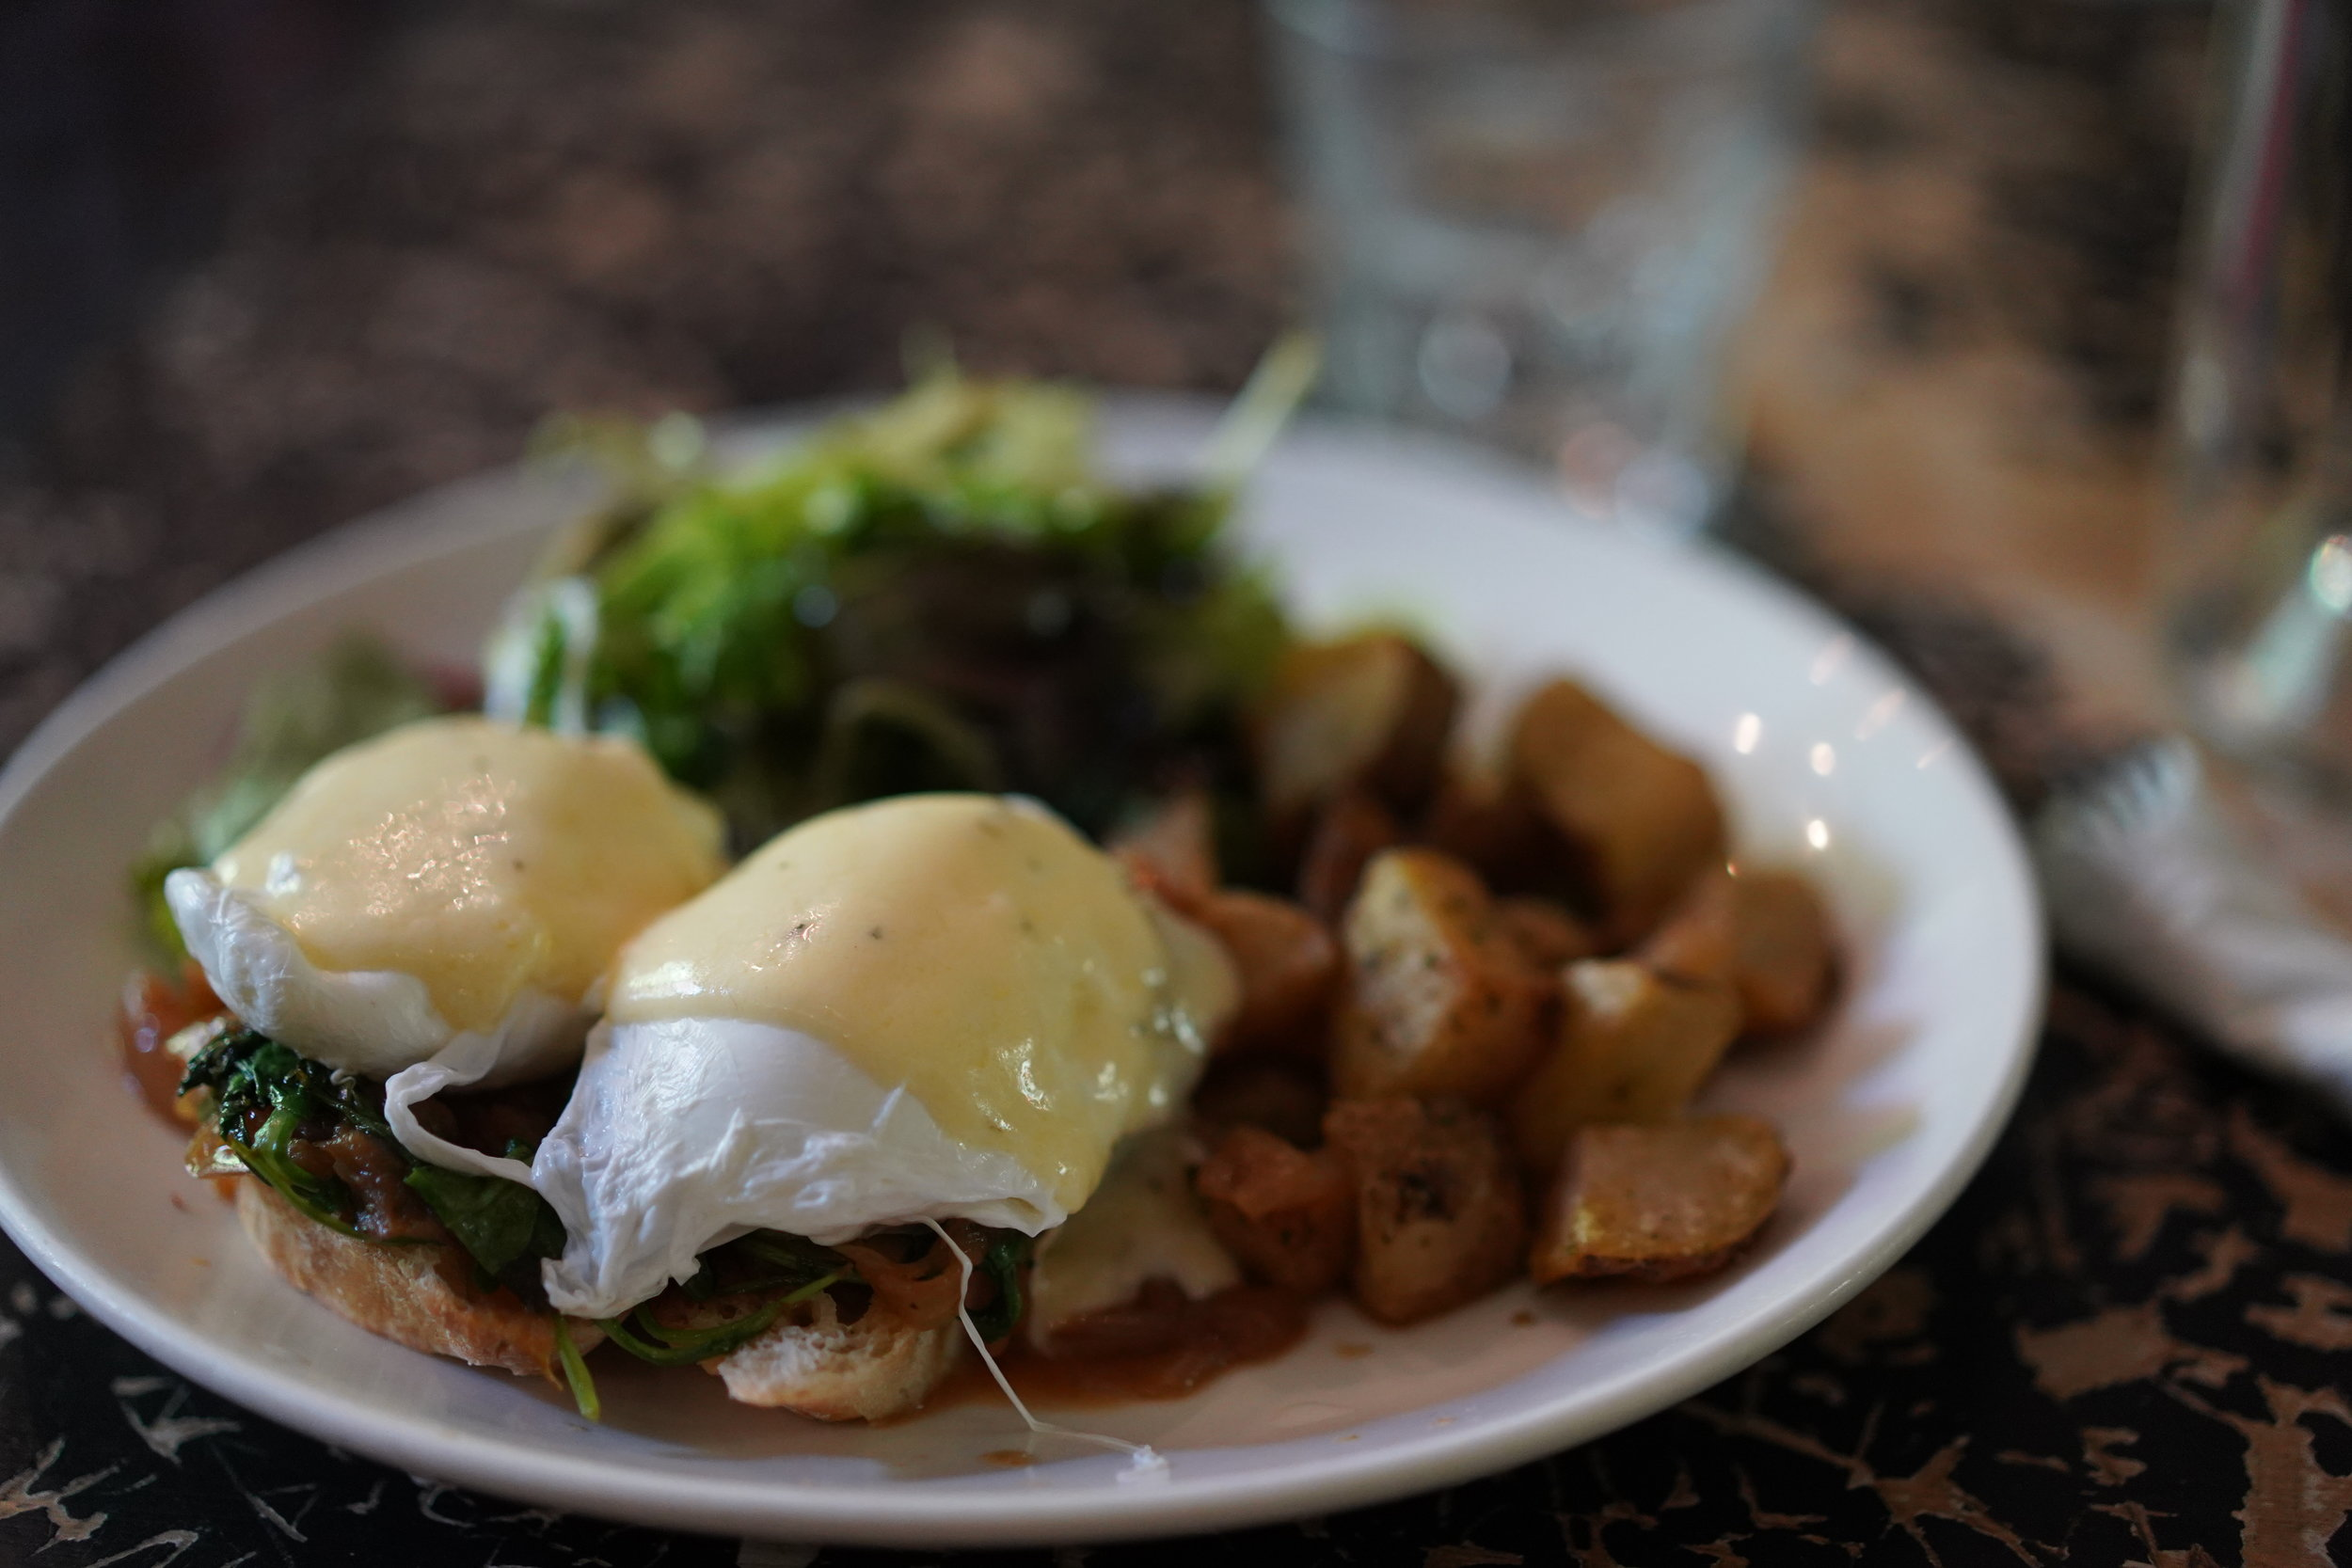 Rabbithole Florentine (served w/ potatoes & salad) $15 Poached eggs on wilted arugula, caramelized onion & sharp cheddar Mornay sauce on baguette